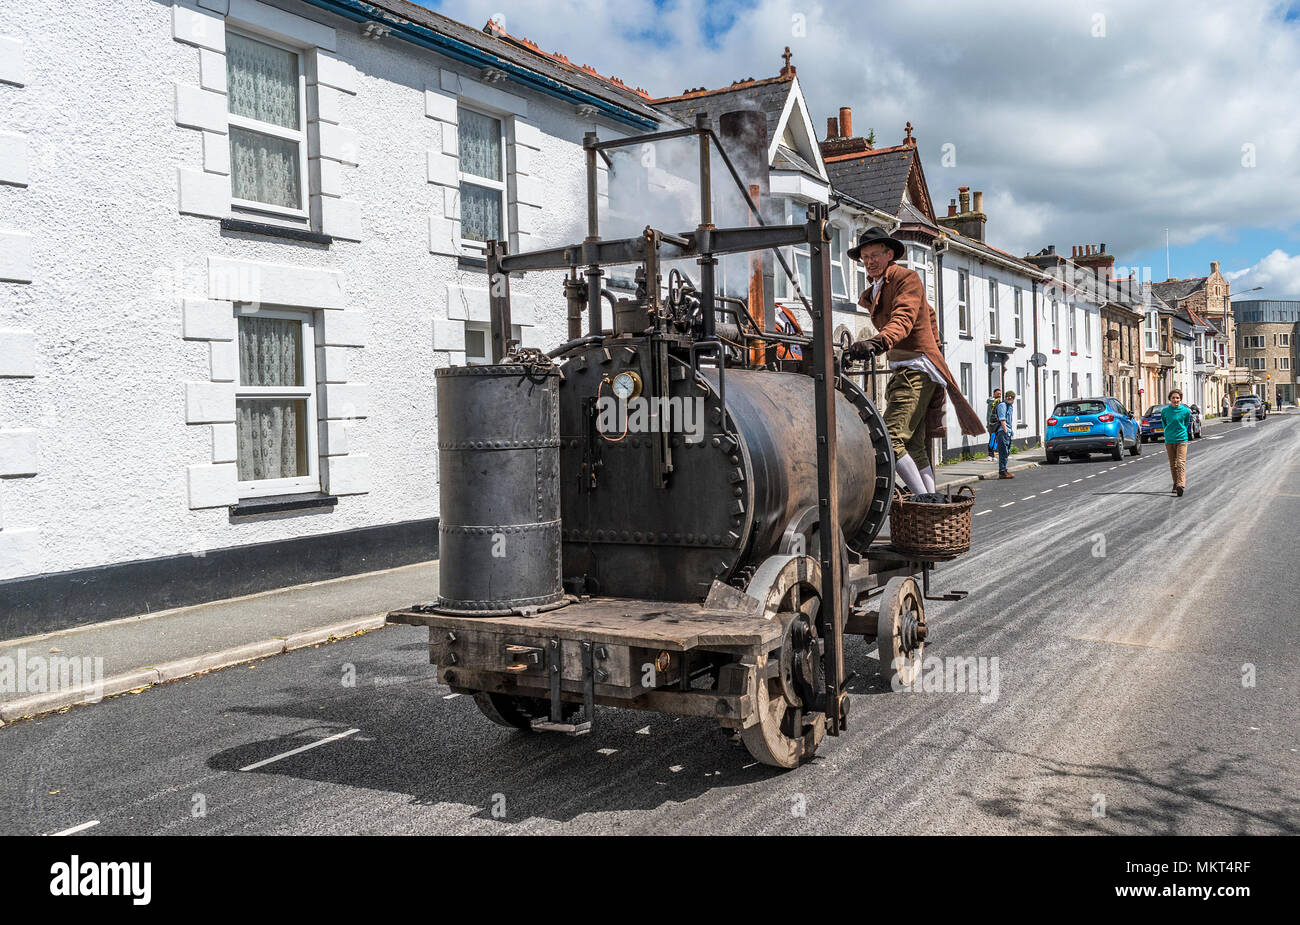 replica of richard trevithicks puffing devil steam locomotive on trevithick day in camborne, cornwall, england, britain, uk. - Stock Image